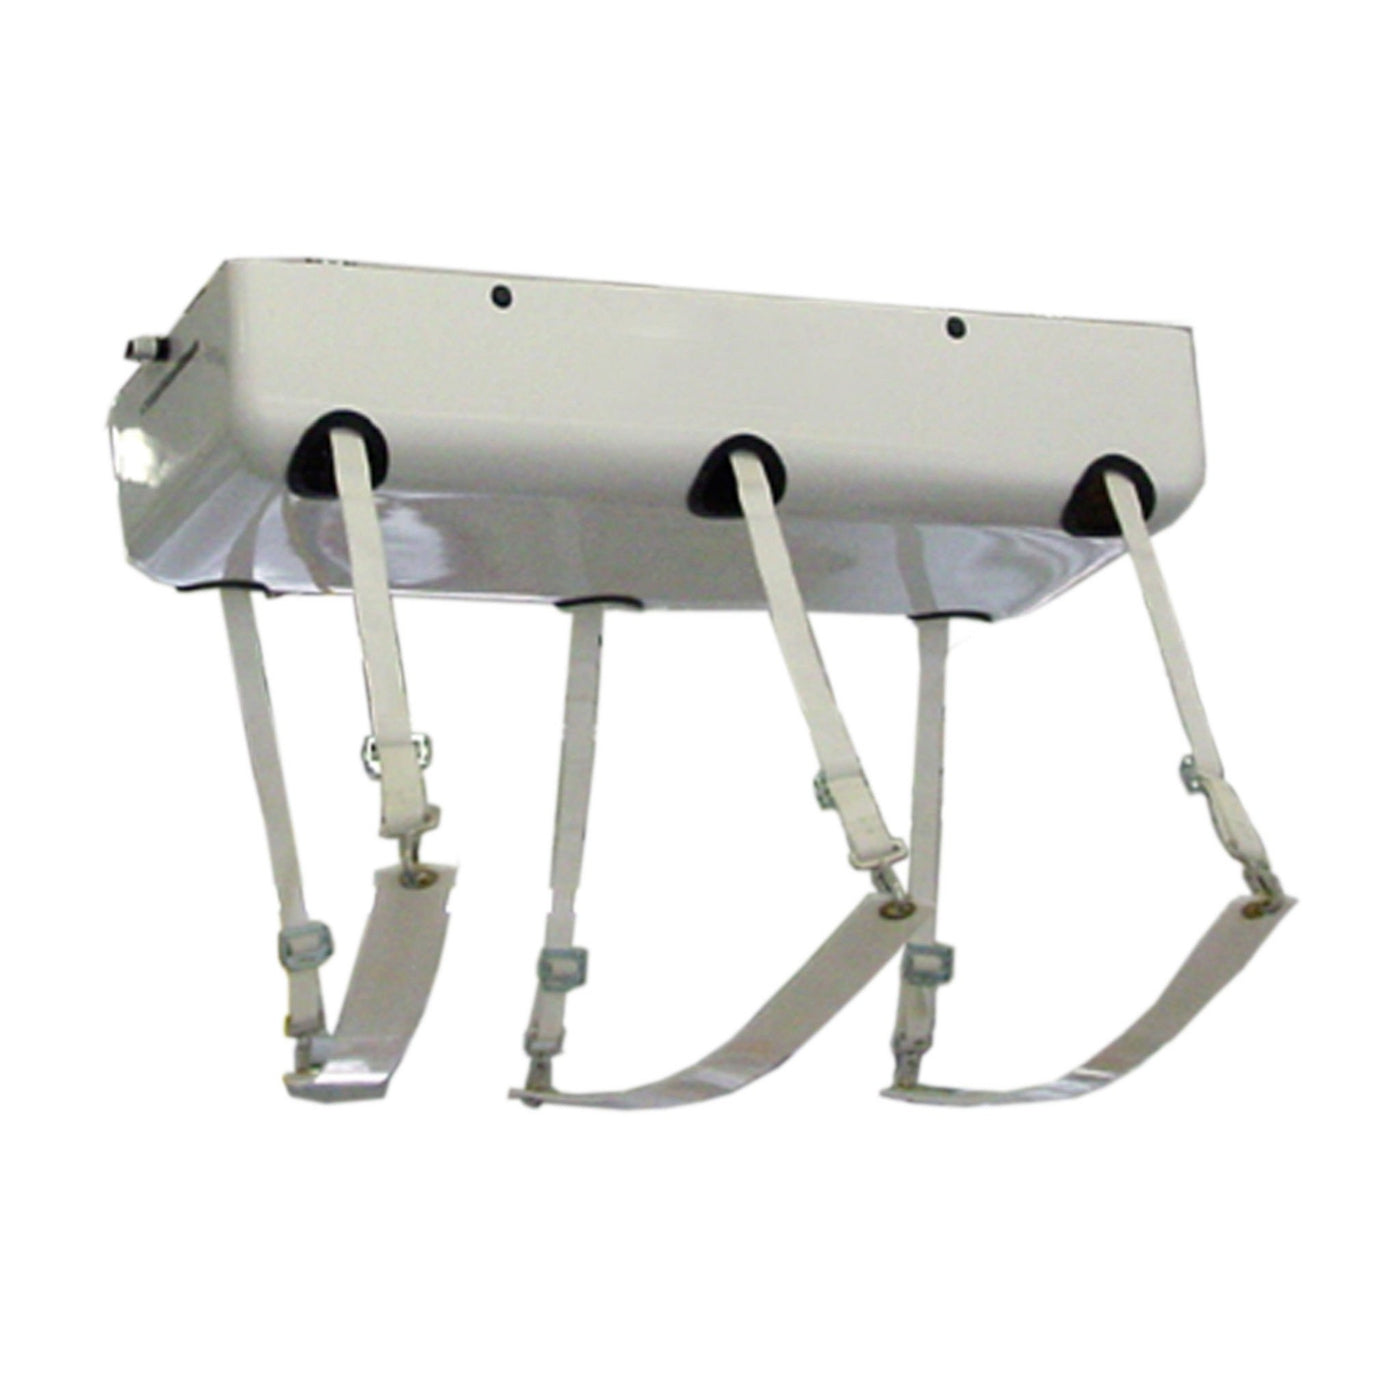 Electric Ceiling Mounted Lift with Straps-Cadaver Handling & Storage Systems-Mortech Manufacturing Company Inc. Quality Stainless Steel Autopsy, Morgue, Funeral Home, Necropsy, Veterinary / Anatomy, Dissection Equipment and Accessories